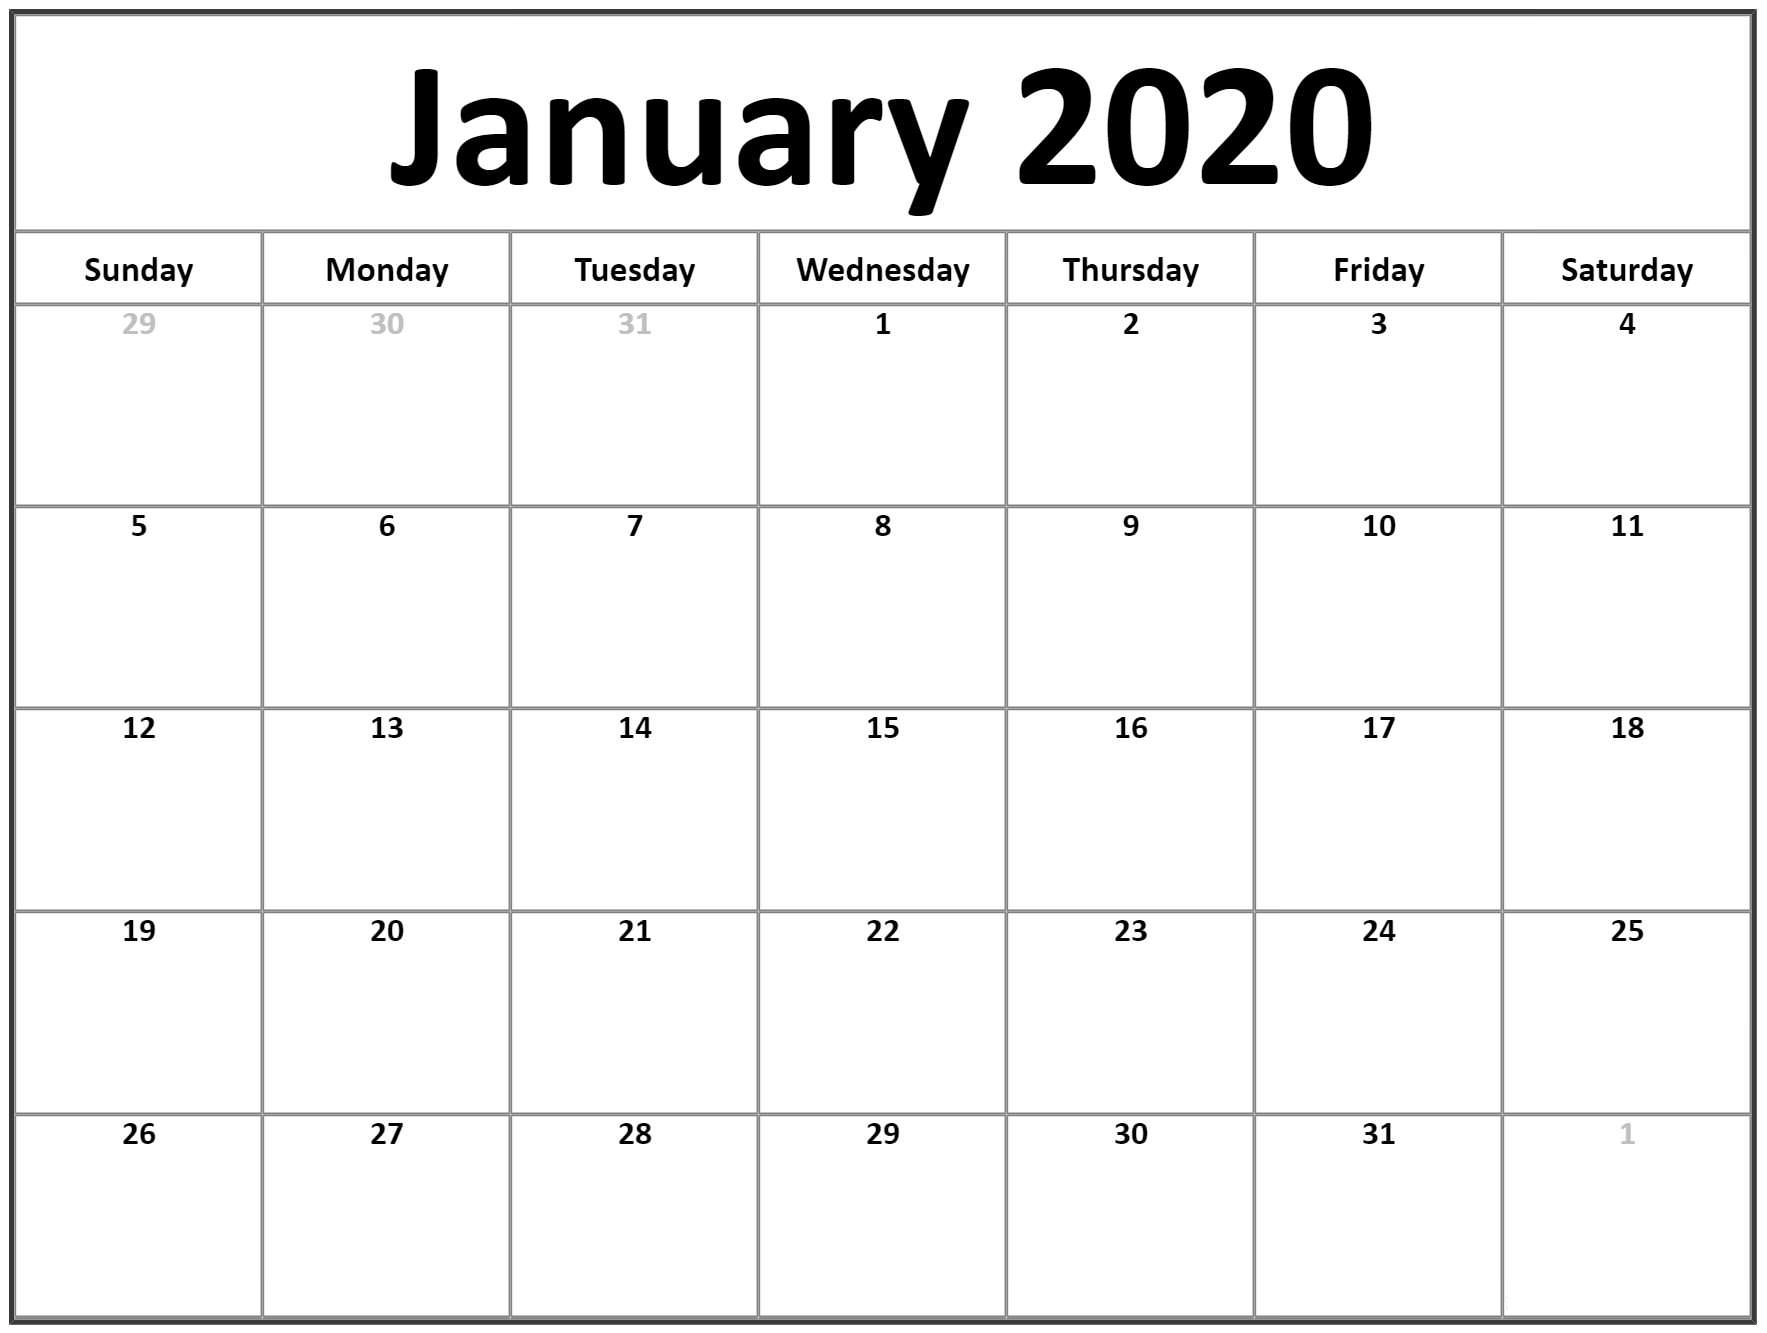 January 2020 Blank Calendar Printable Word Pdf Template pertaining to January 2020 Calendar Blank